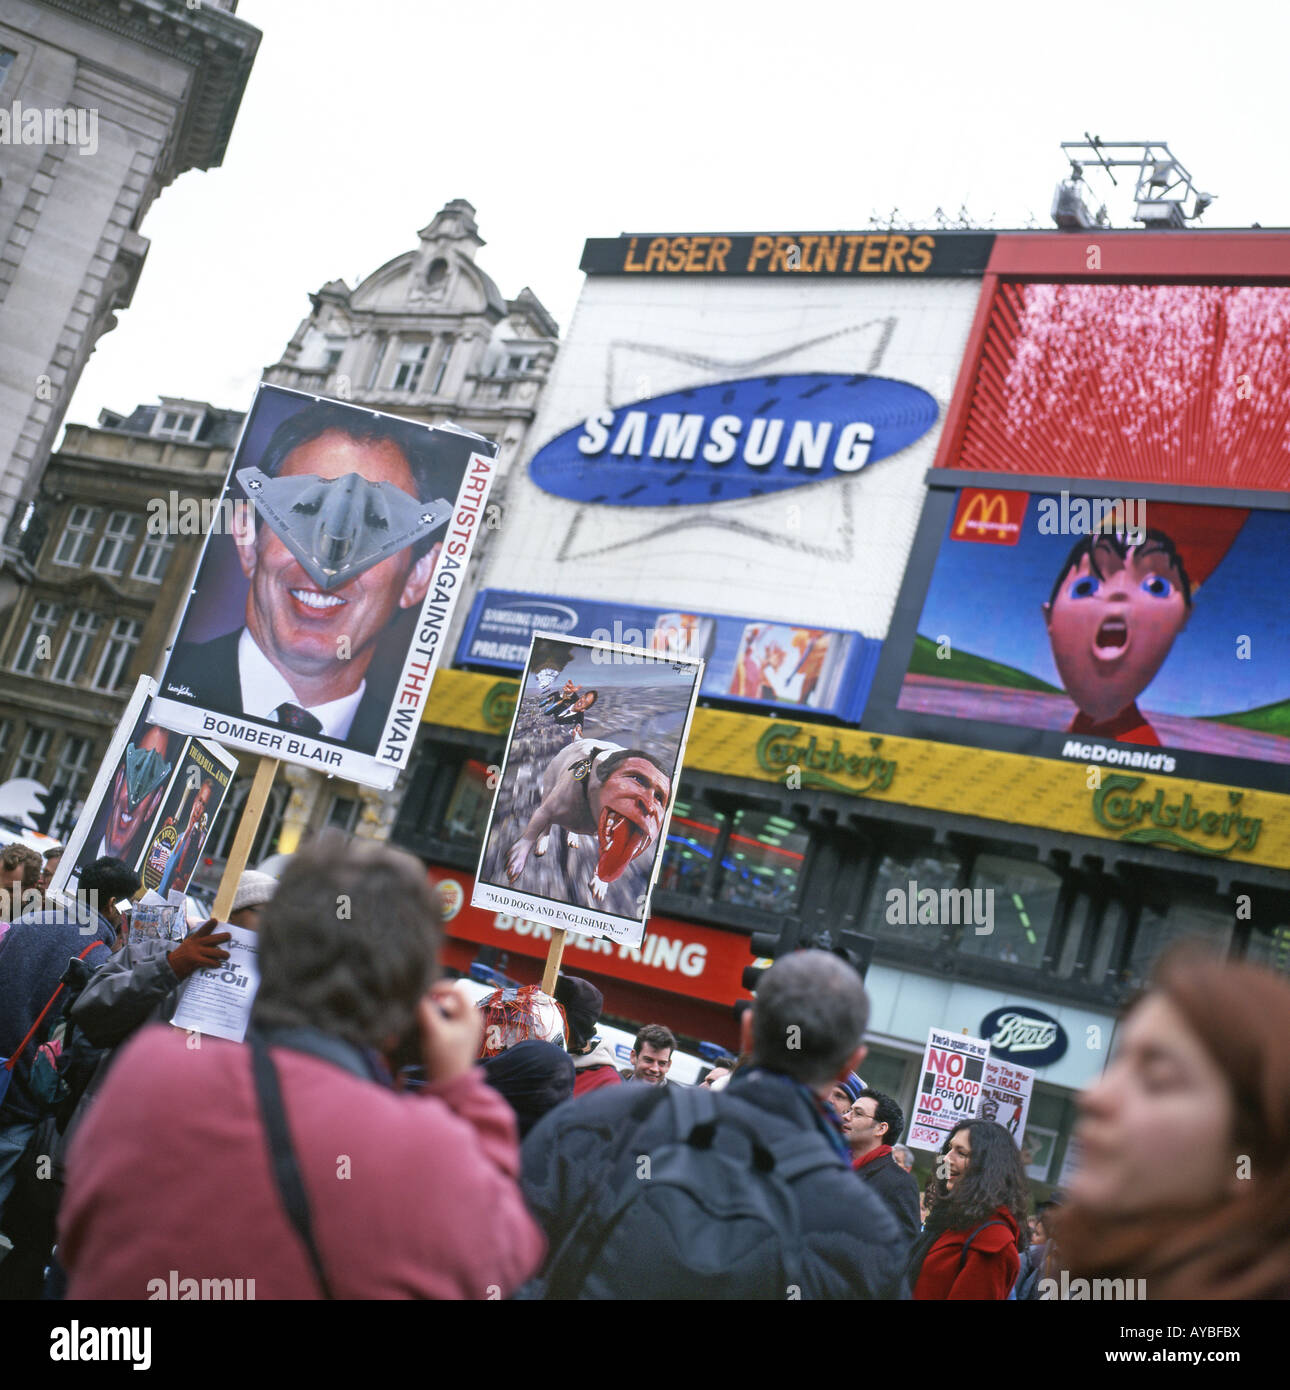 Demonstrators with posters of Bush and Blair at Picadilly Circus during the Anti War March on 15th February 2003 - Stock Image